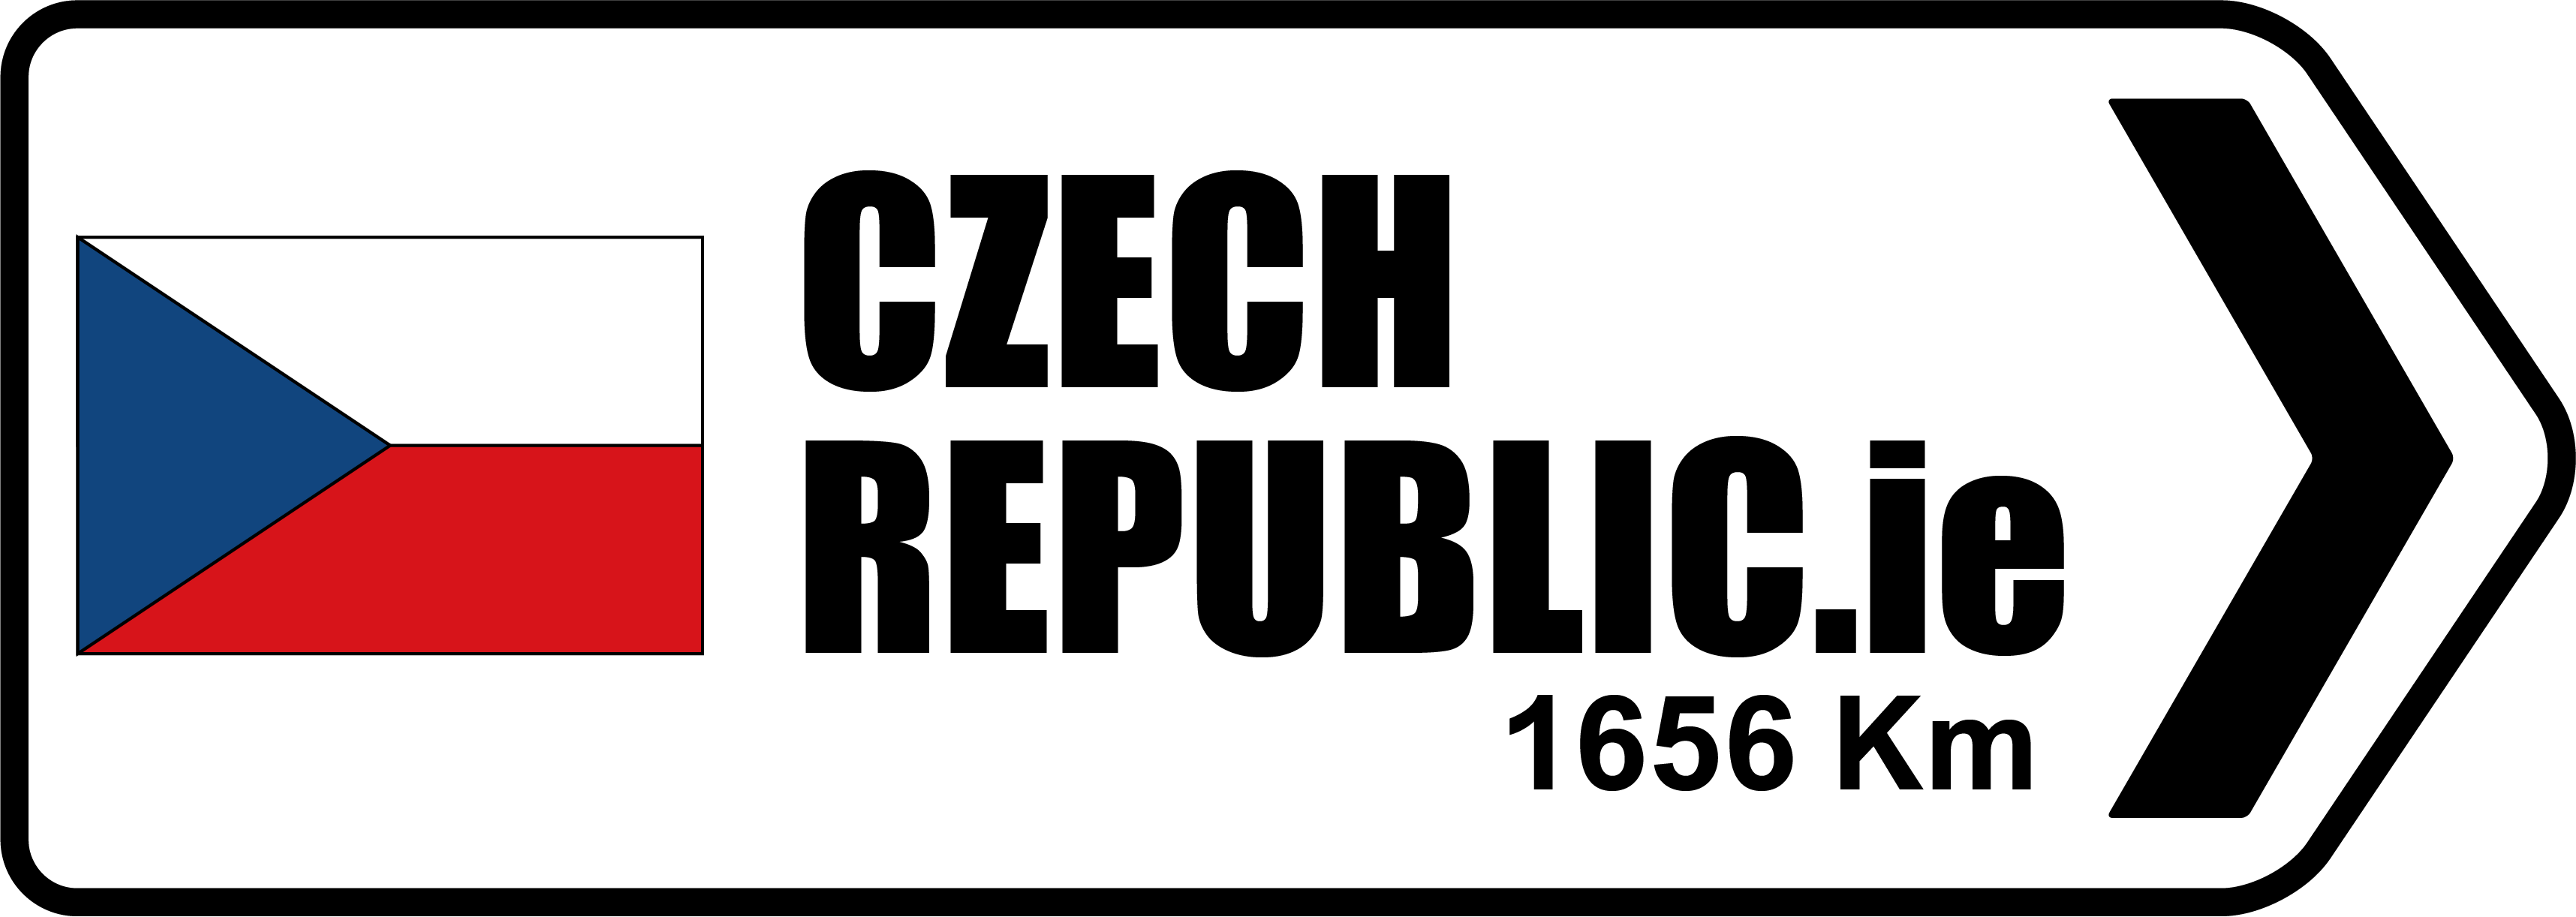 Visit Czech Republic from Ireland